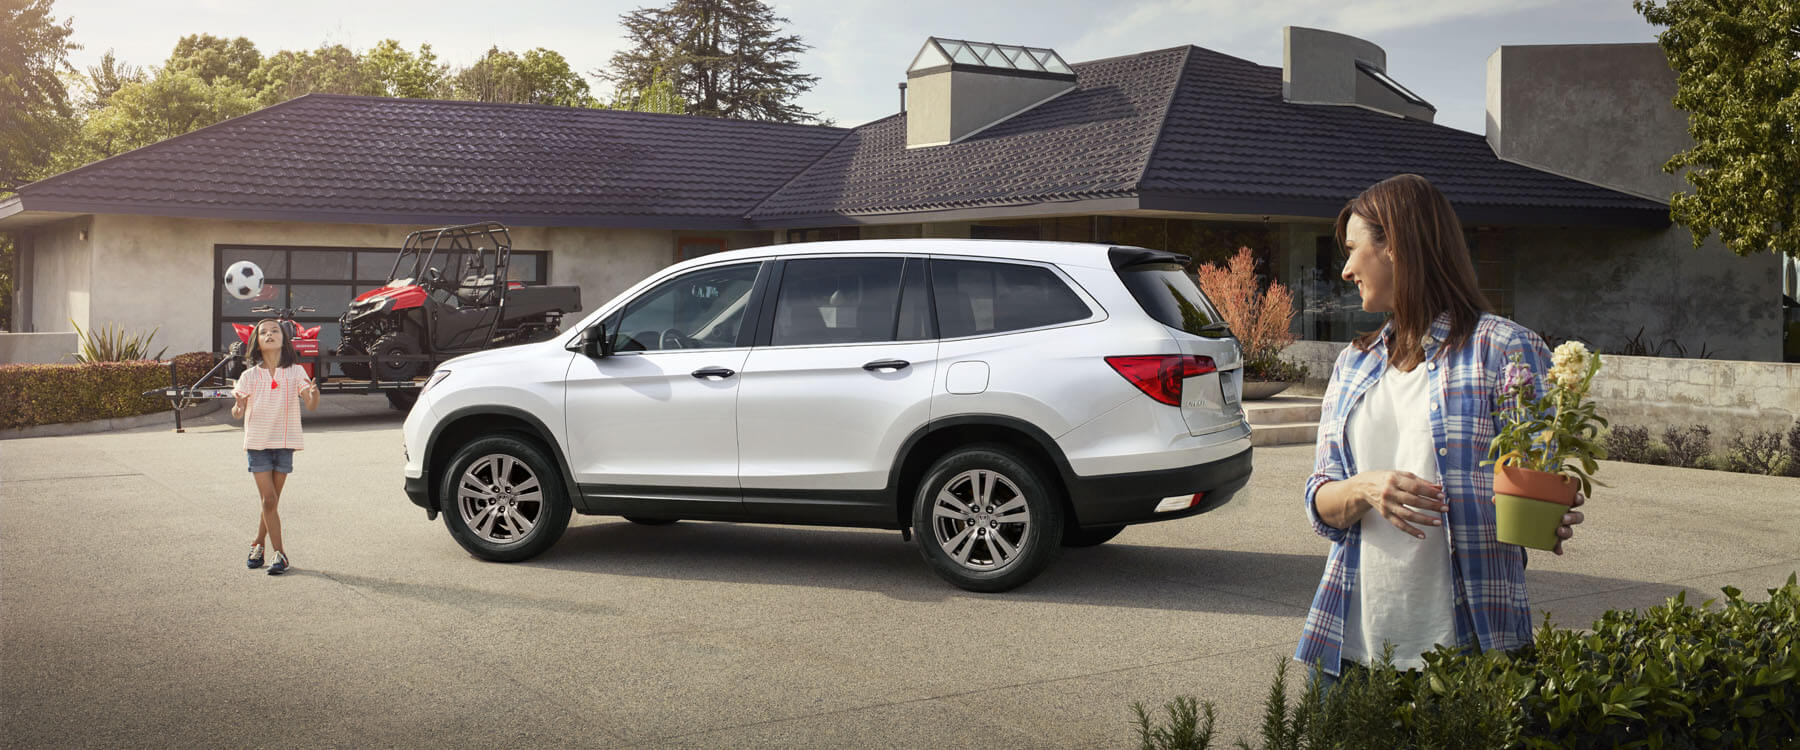 Discover Various Best Family Suvs Within The Honda Lineup